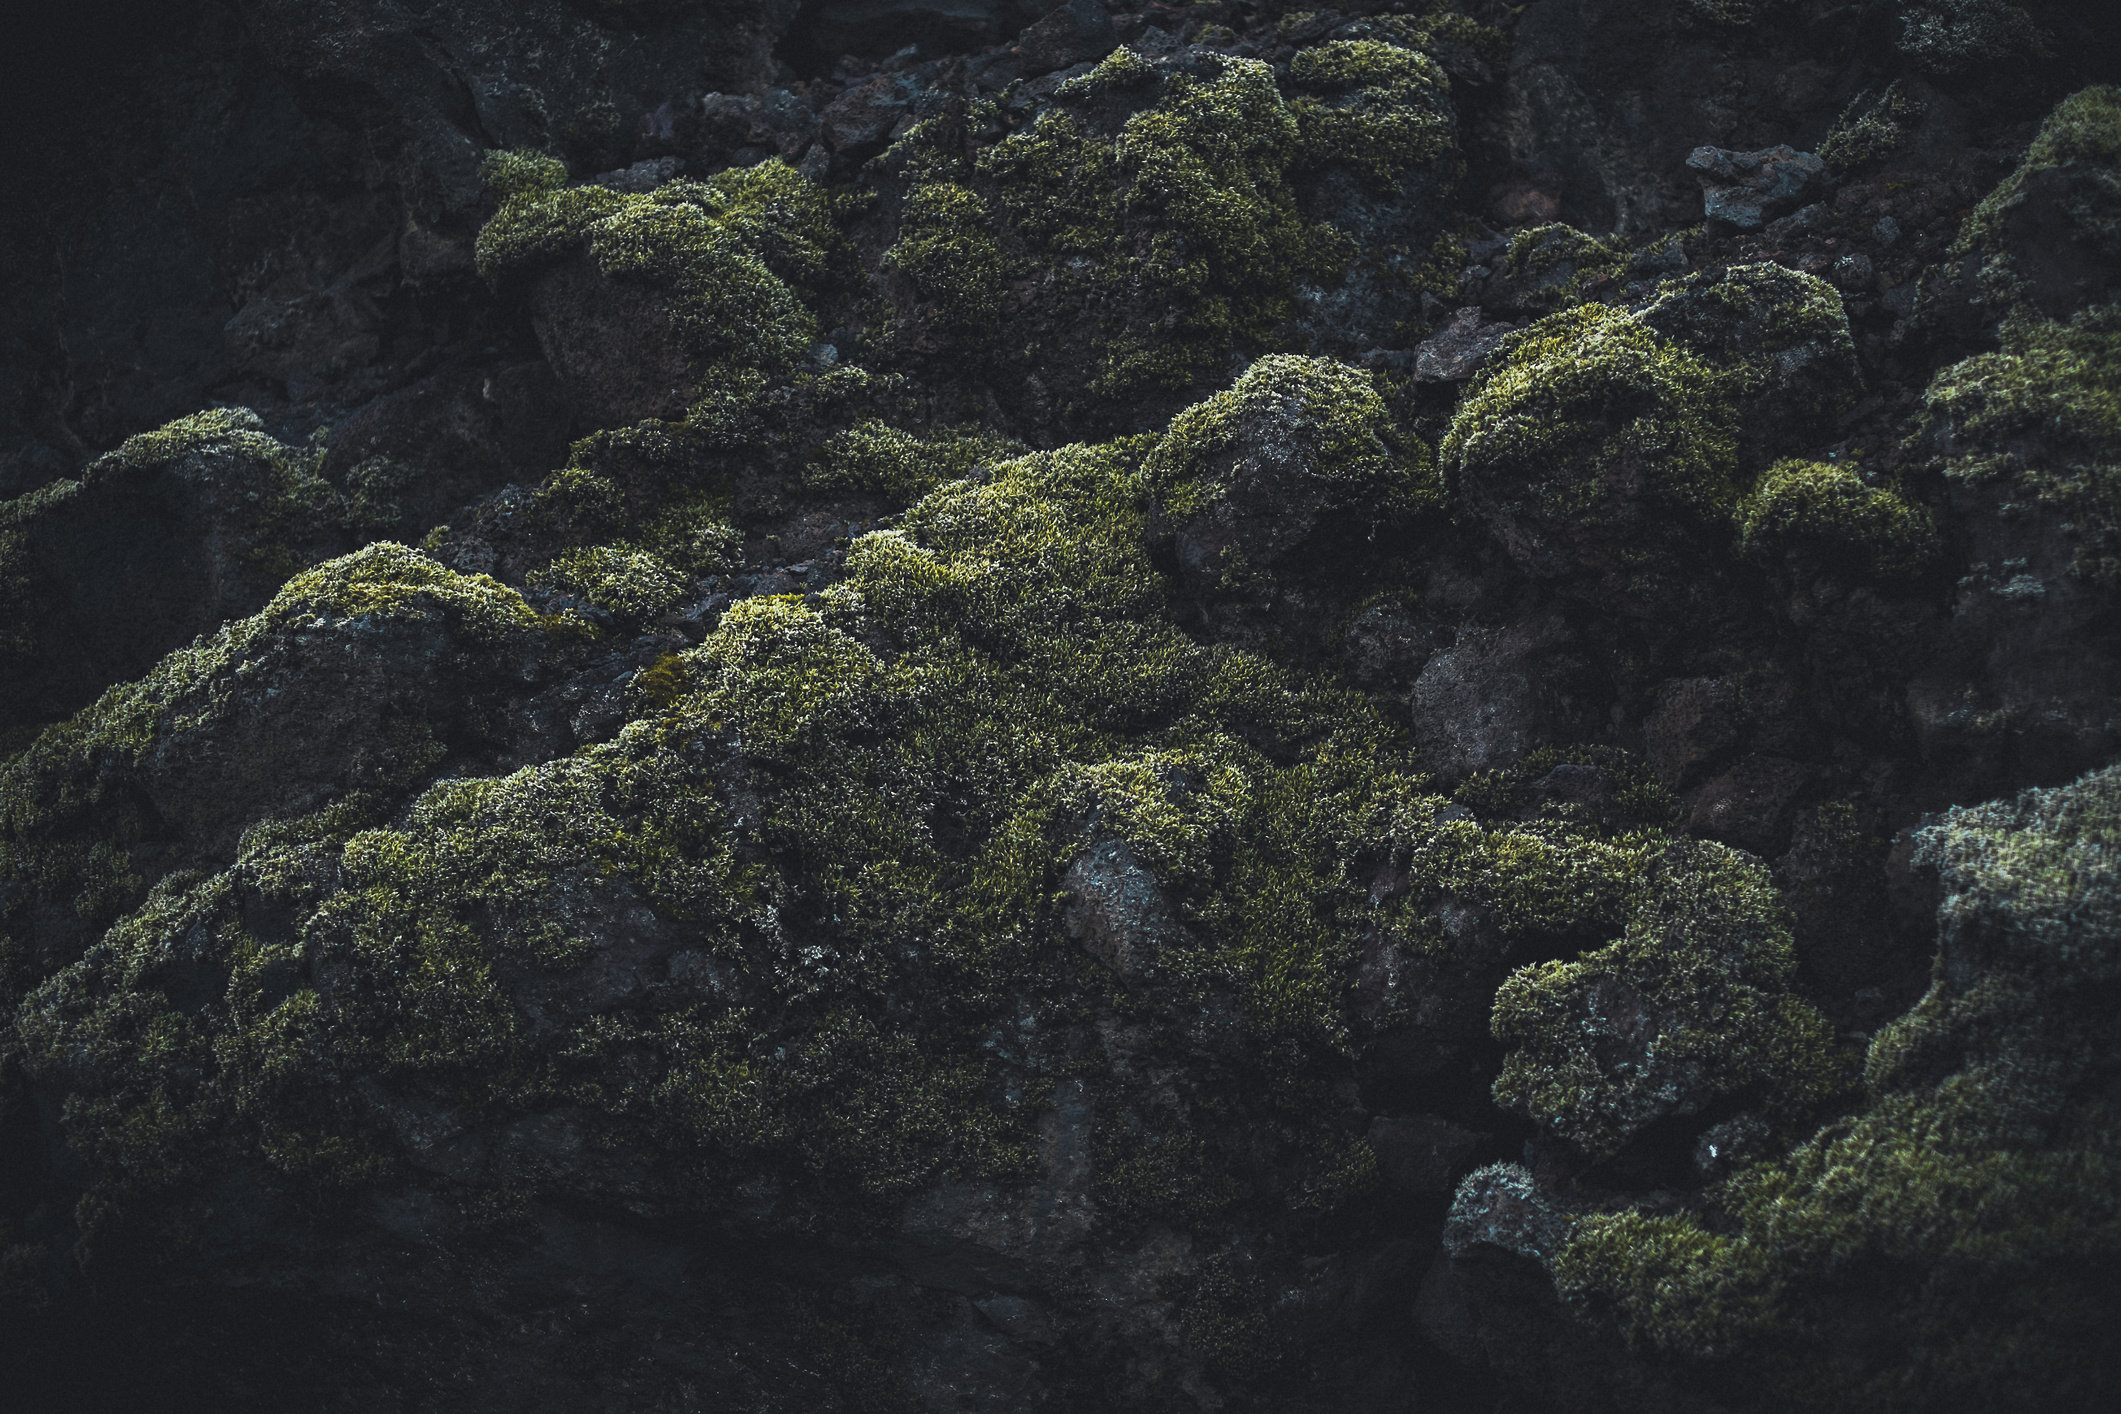 textures_of_iceland-5-(ZF-5665-08154-1-005).jpg